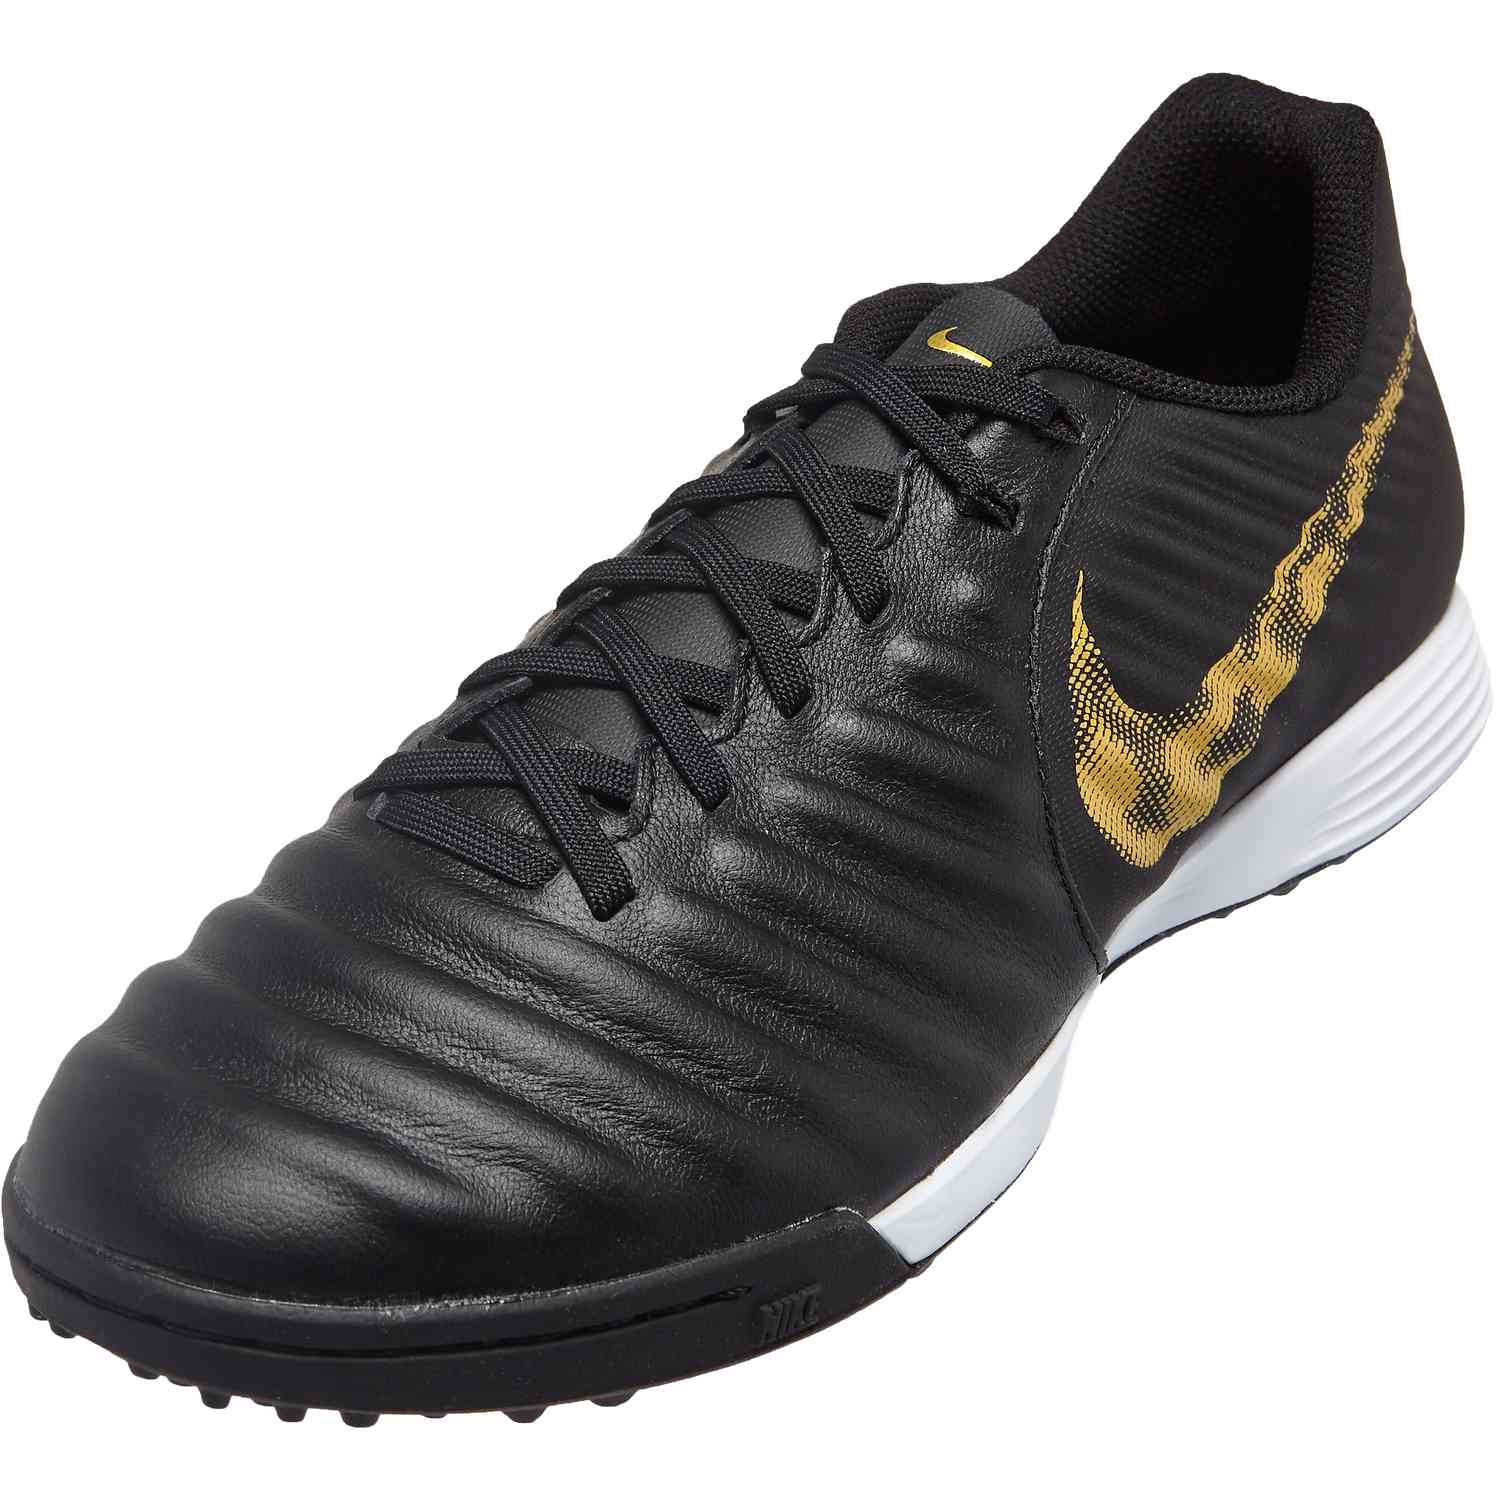 online store d92c3 b9aa5 Nike Tiempo Legend 7 Academy TF – Black Lux